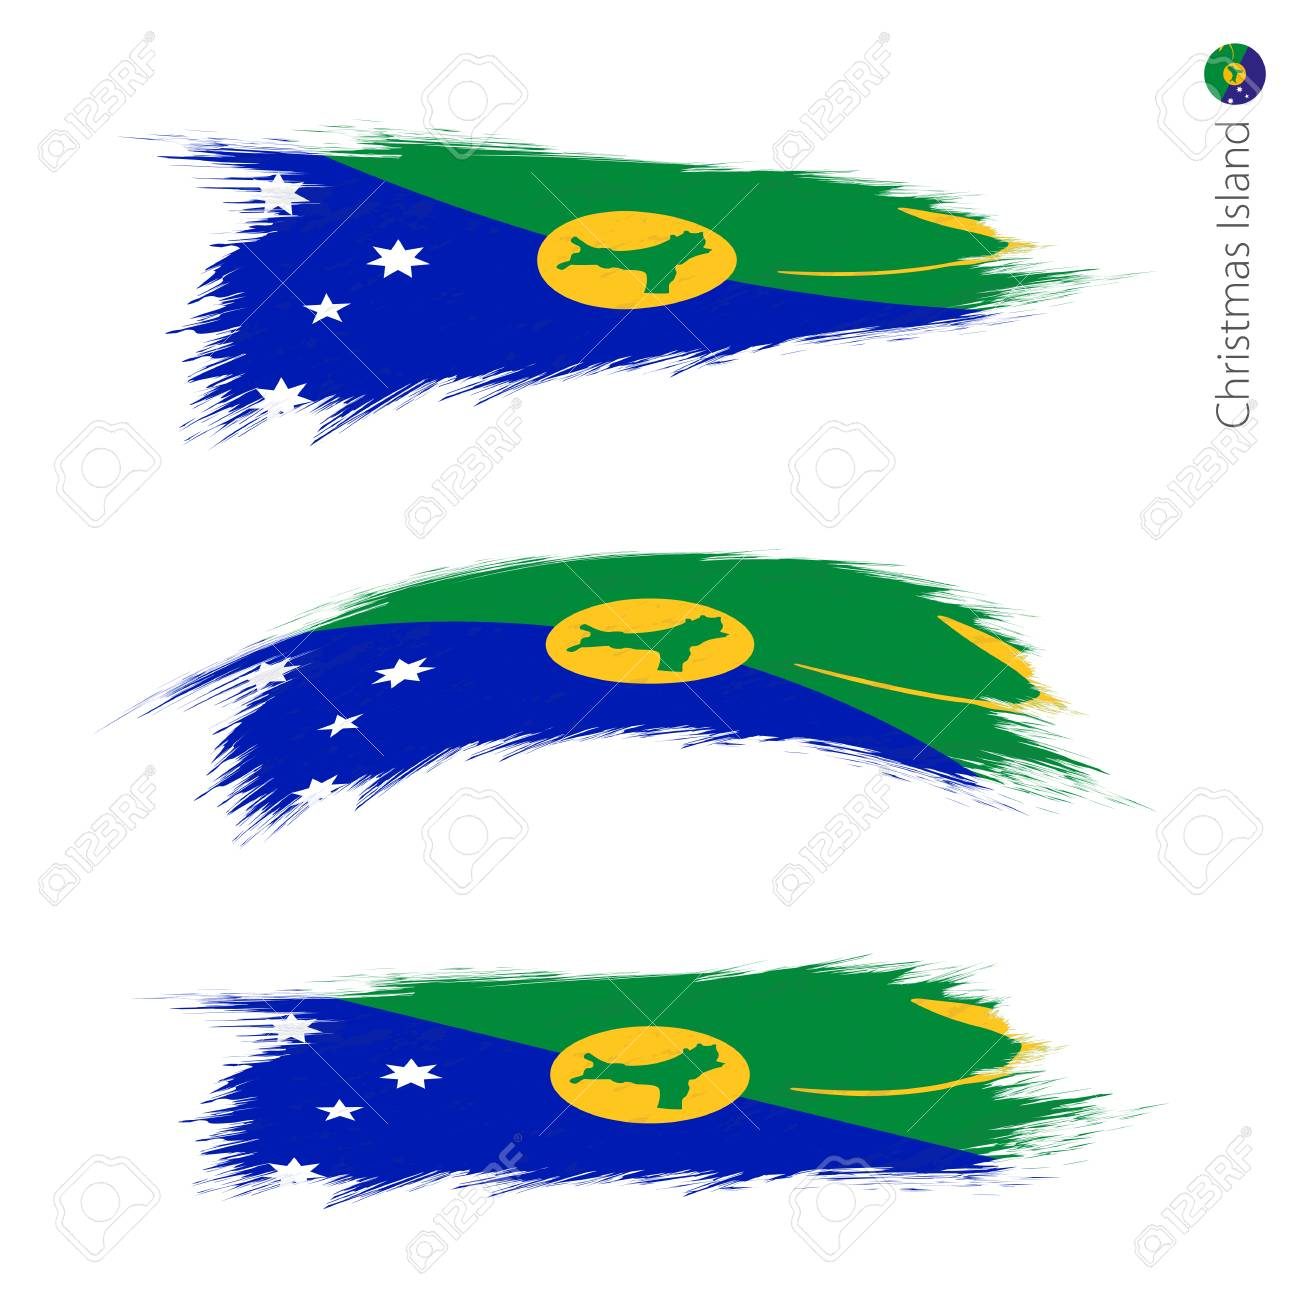 Christmas Island Flag.Set Of 3 Grunge Textured Flag Of Christmas Island Three Versions